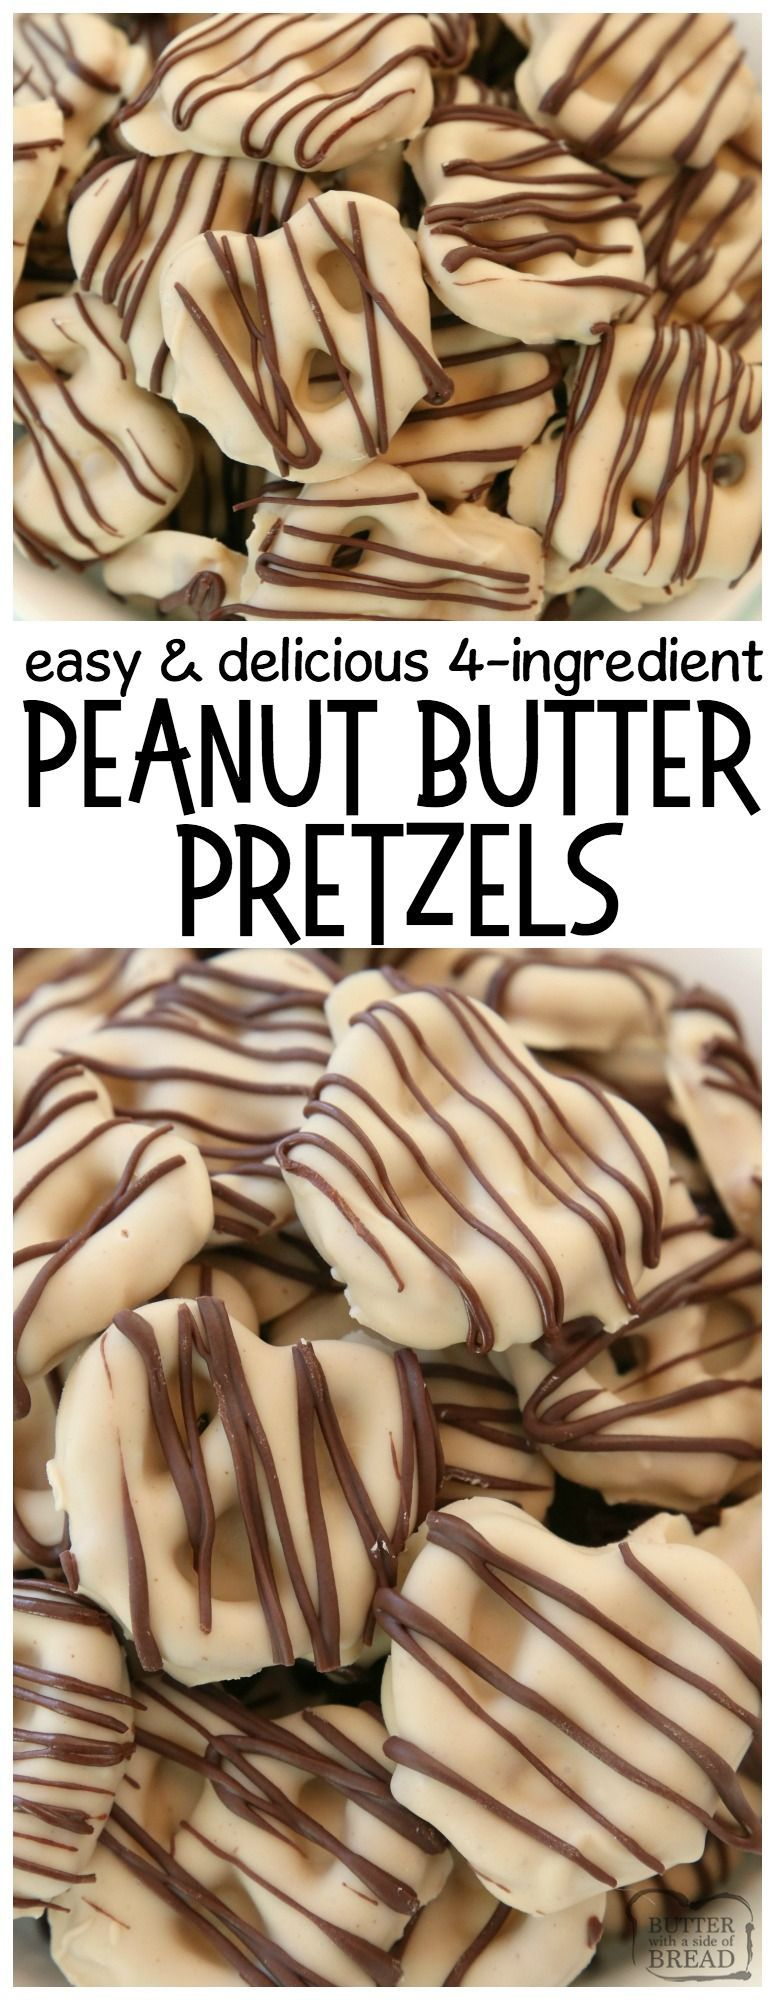 Peanut Butter Pretzels are made with 4 simple ingredients and they're completely amazing! Easy treats made with peanut butter, pretzels, and chocolate & perfect for anytime! Delicious for or with few ingredients and minimal work! SO simple! Butter With A Side of Bread